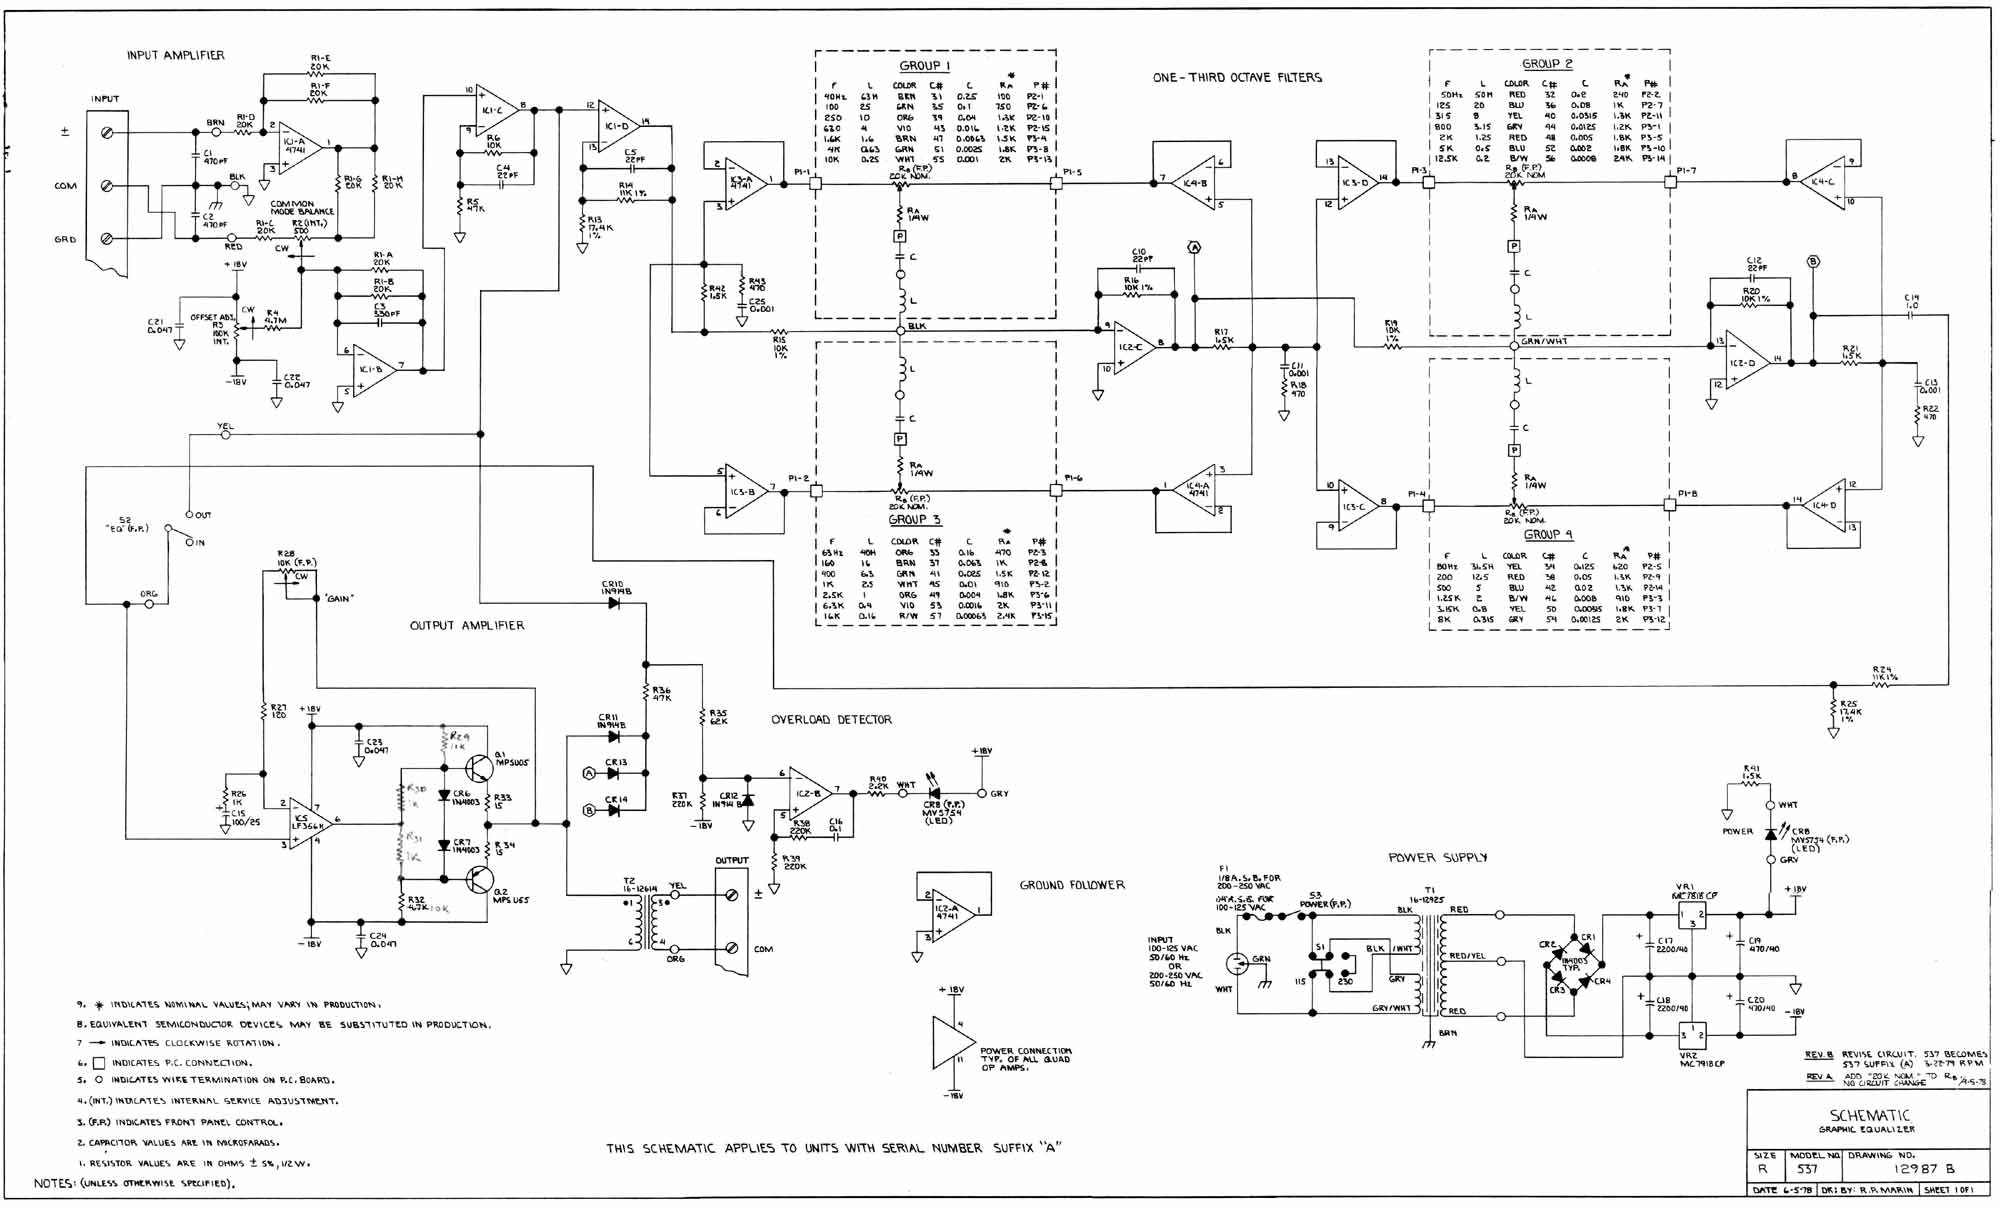 Graphic Equaliser 537 - schematic